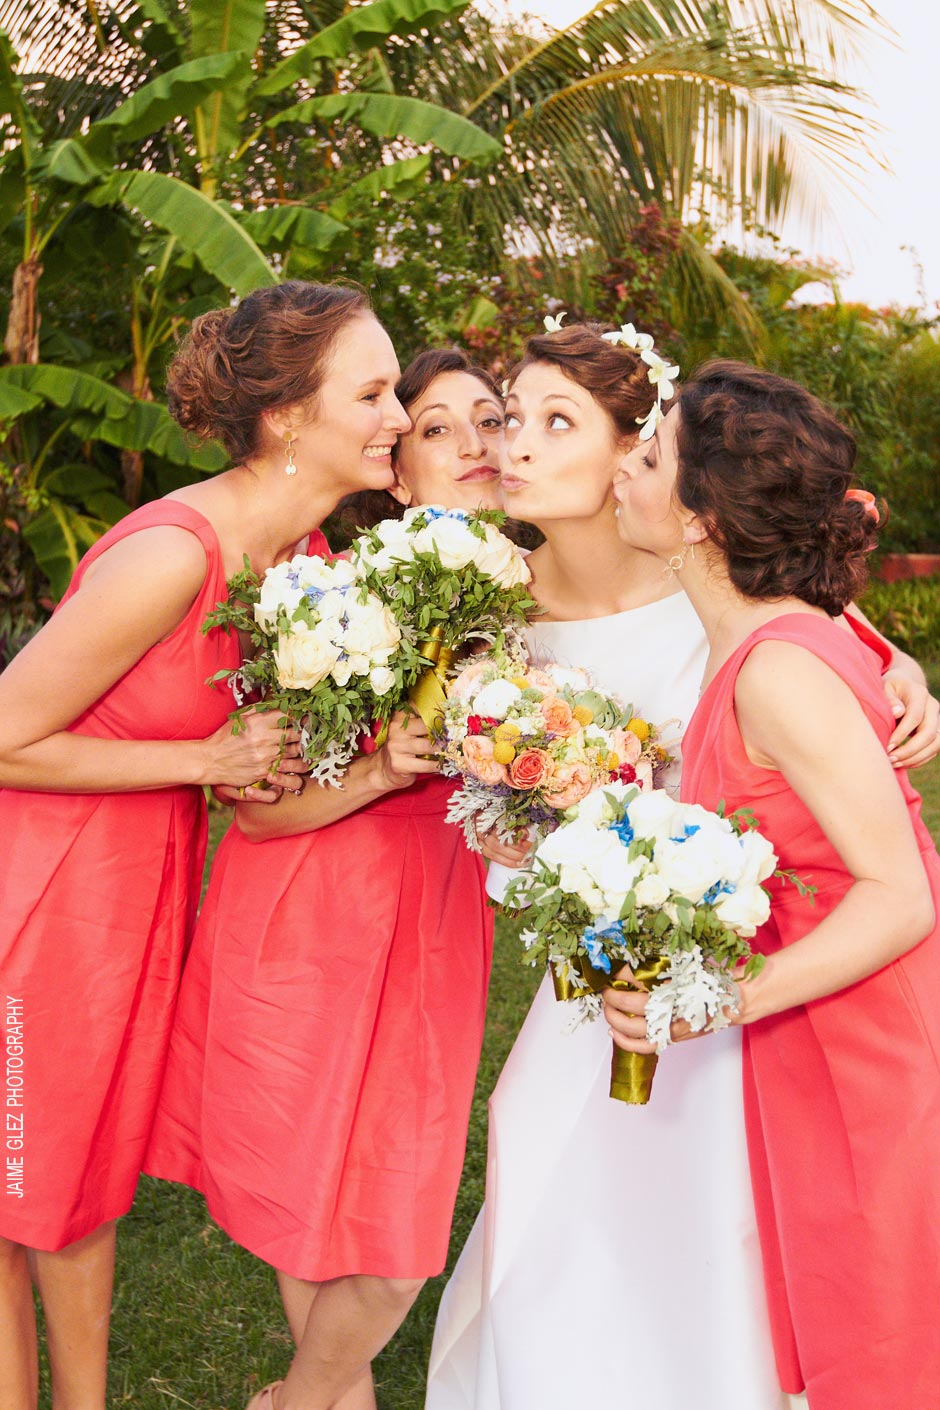 Enjoying a photo session with bridesmaids.